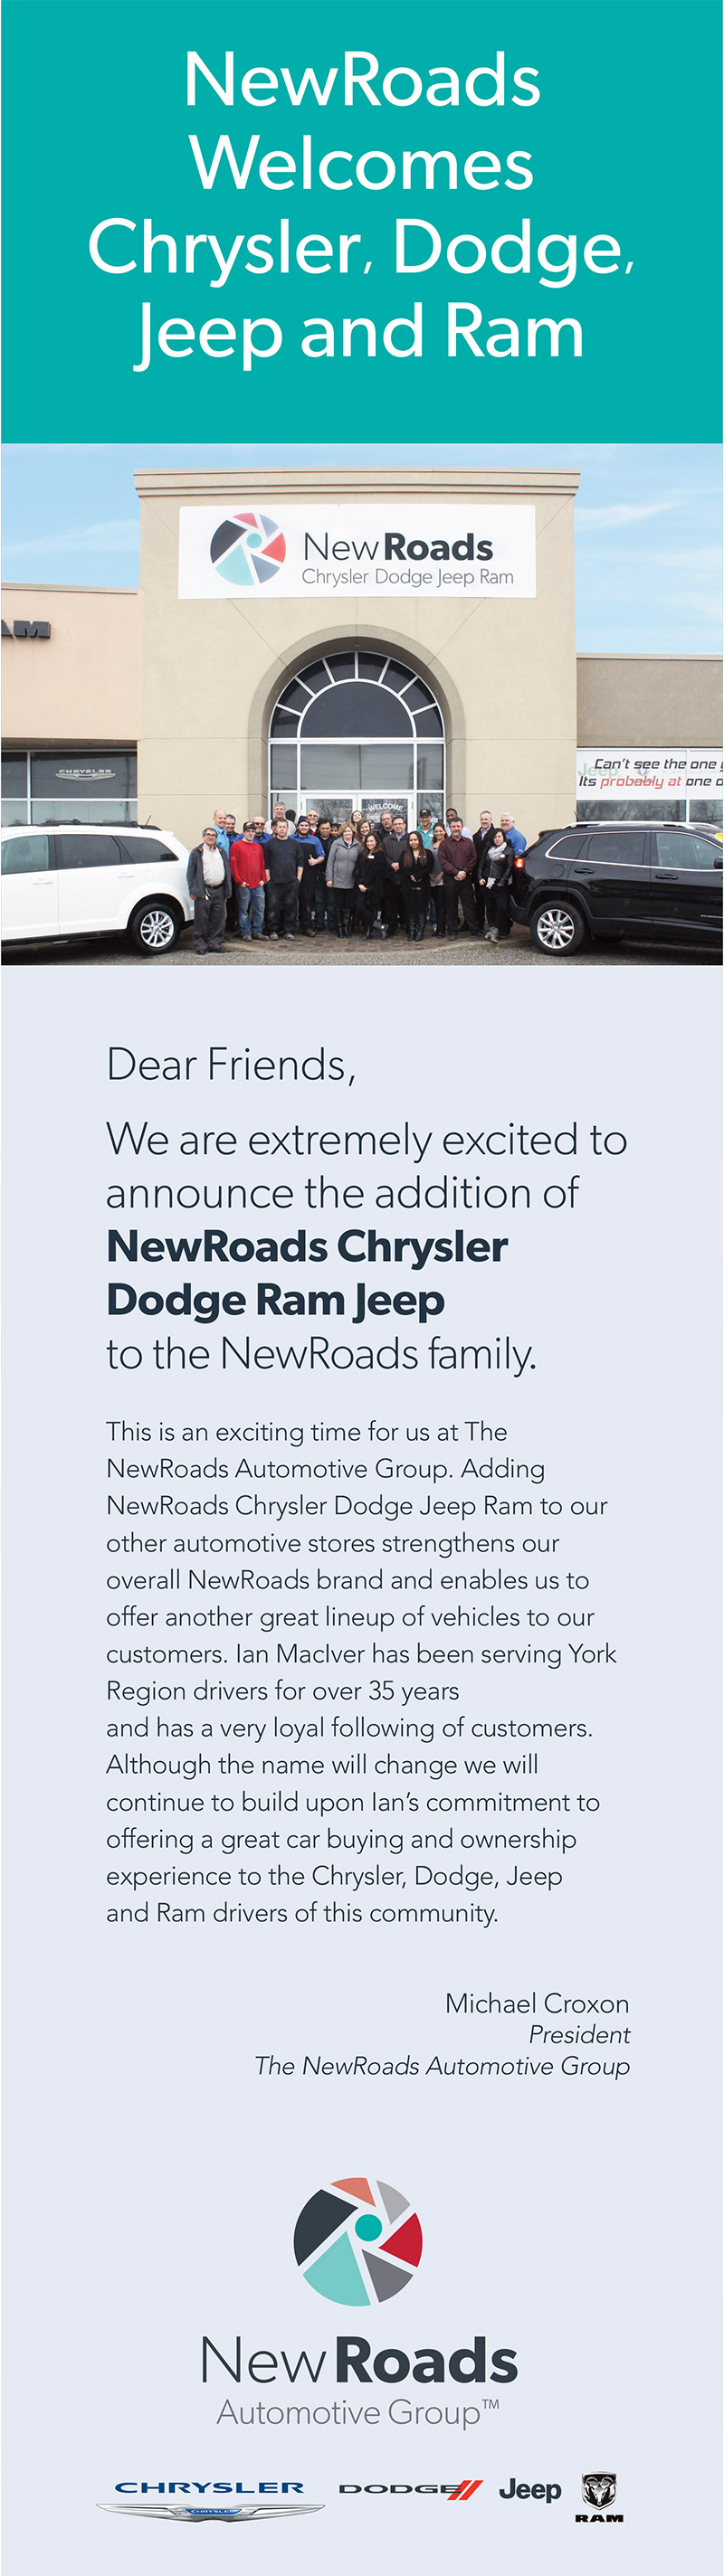 NewRoads Chrysler Dodge Jeep Ram in Newmarket Ontario